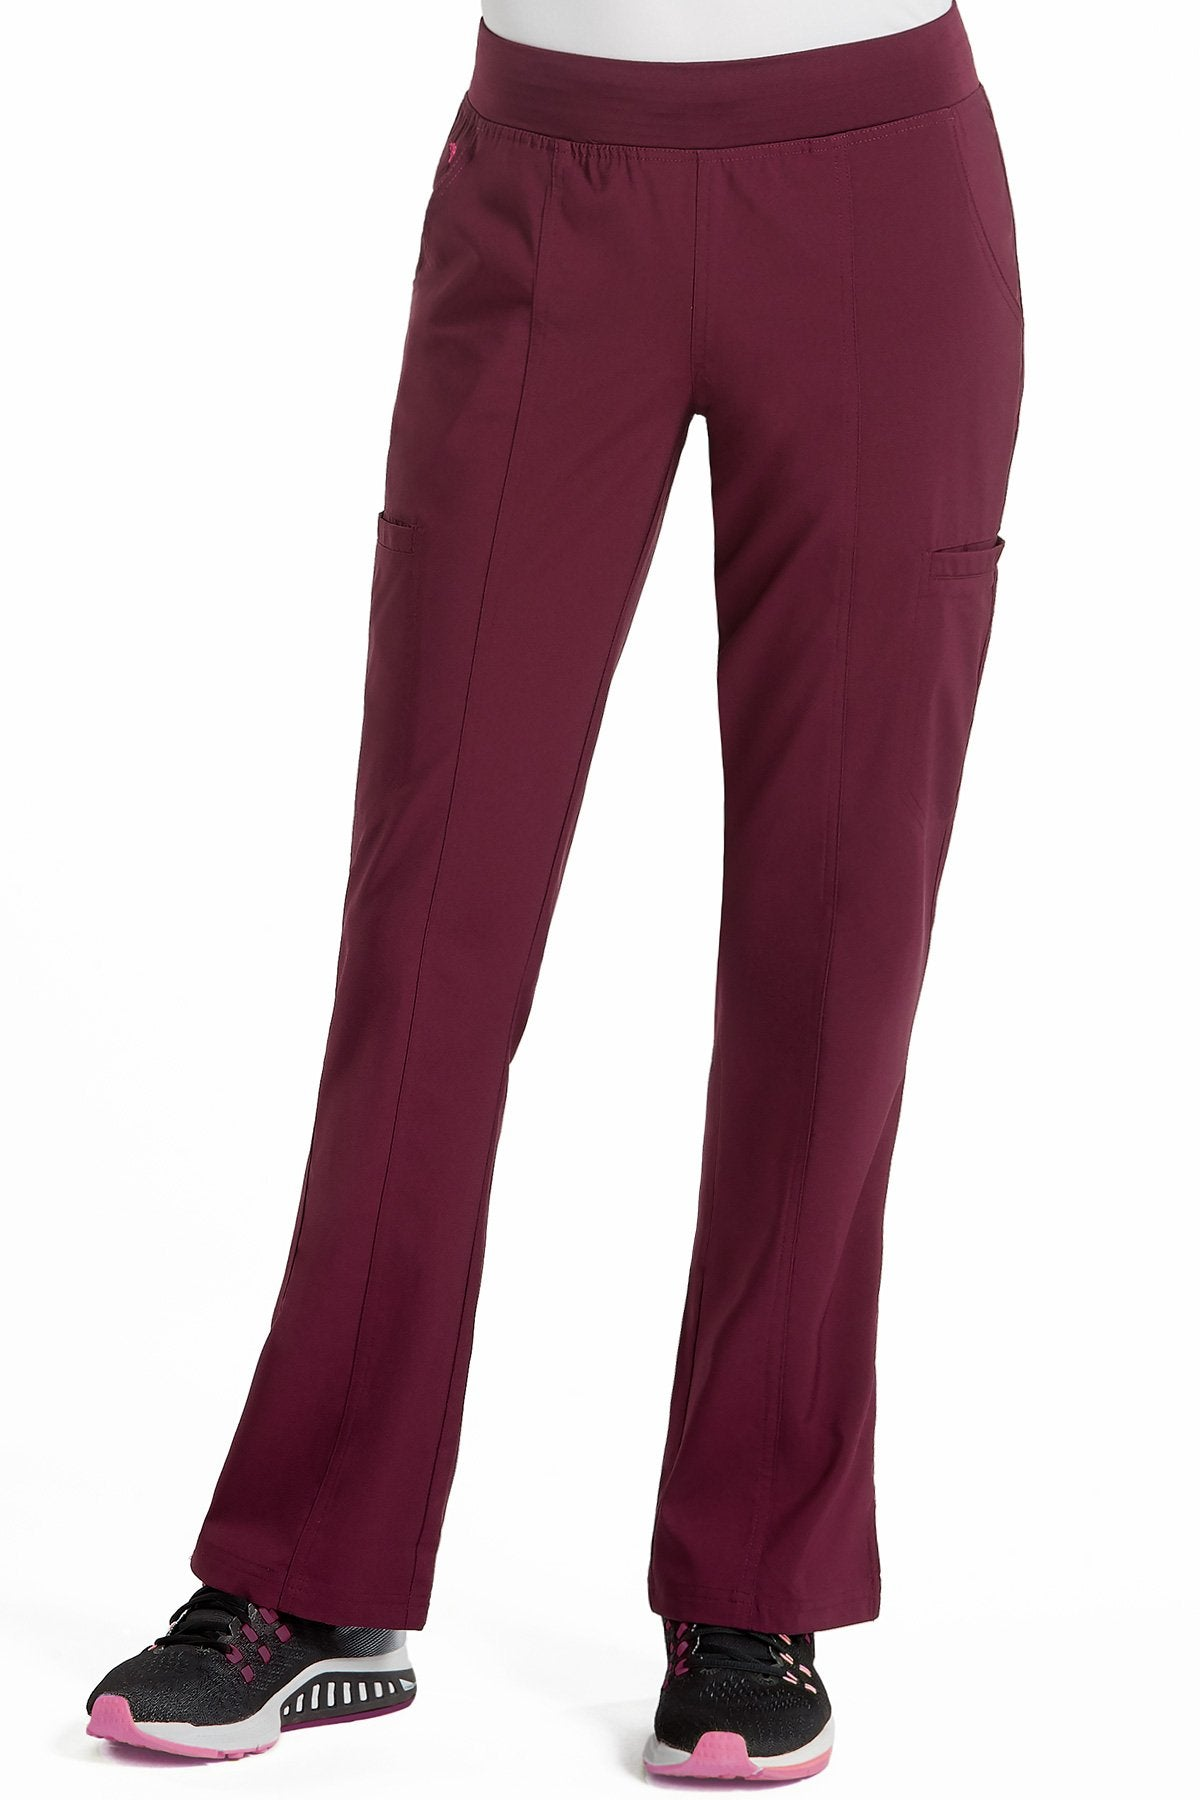 Med Couture Energy 8744 Tall Yoga 2 Cargo Pocket Pant